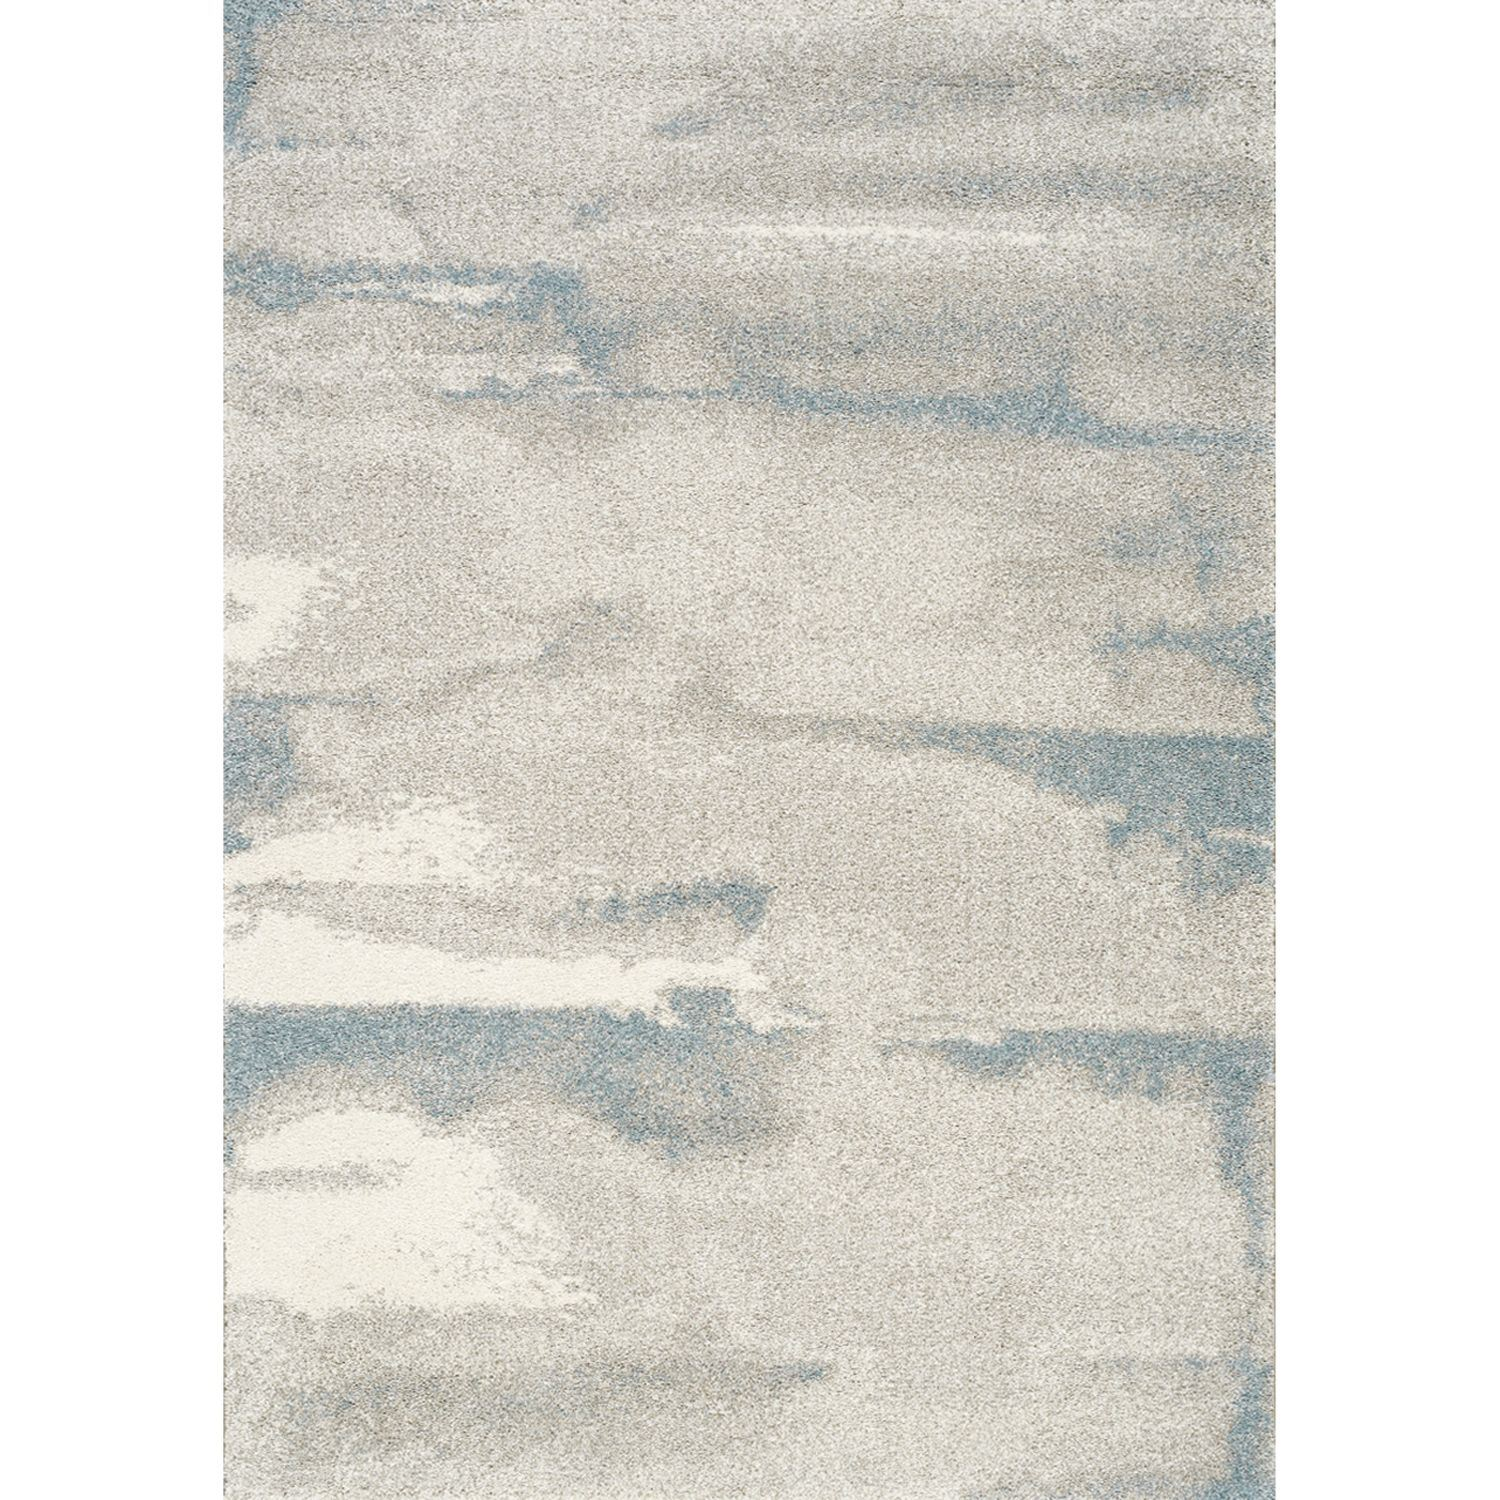 sable soft blue ivory grey 8x10 rug sable7270 h344 7 10 x10 10